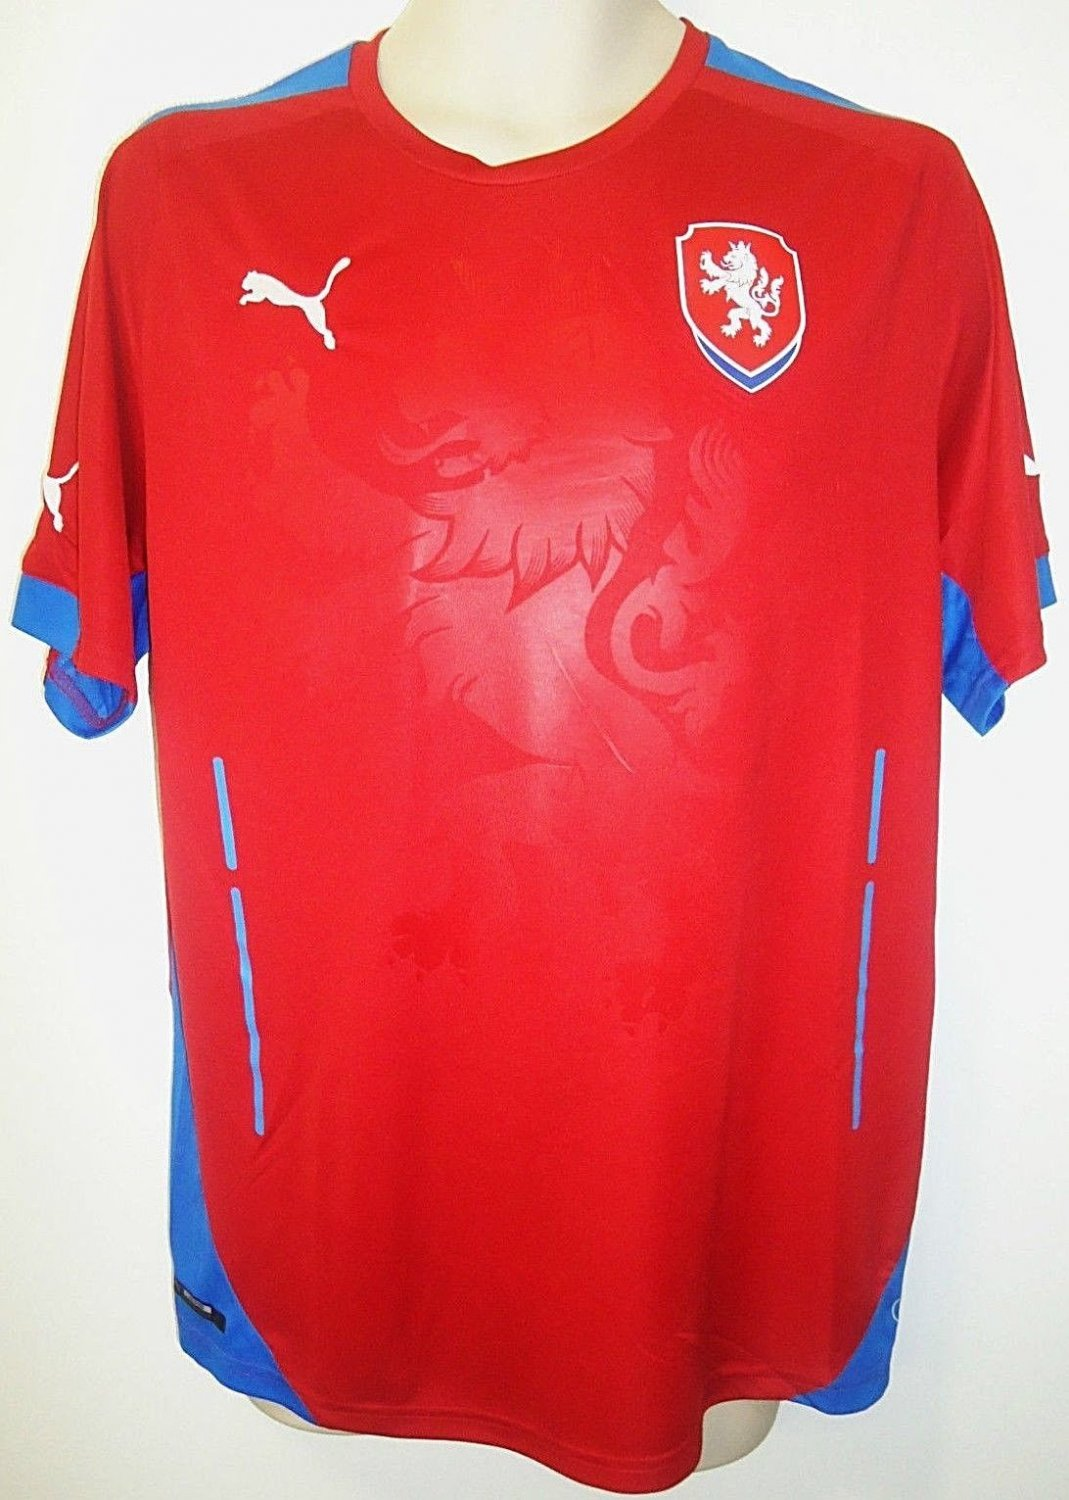 PUMA - CZECH REPUBLIC - HOME - LARGE - RED - BLUE - SOCCER - JERSEY - MLS - NEW